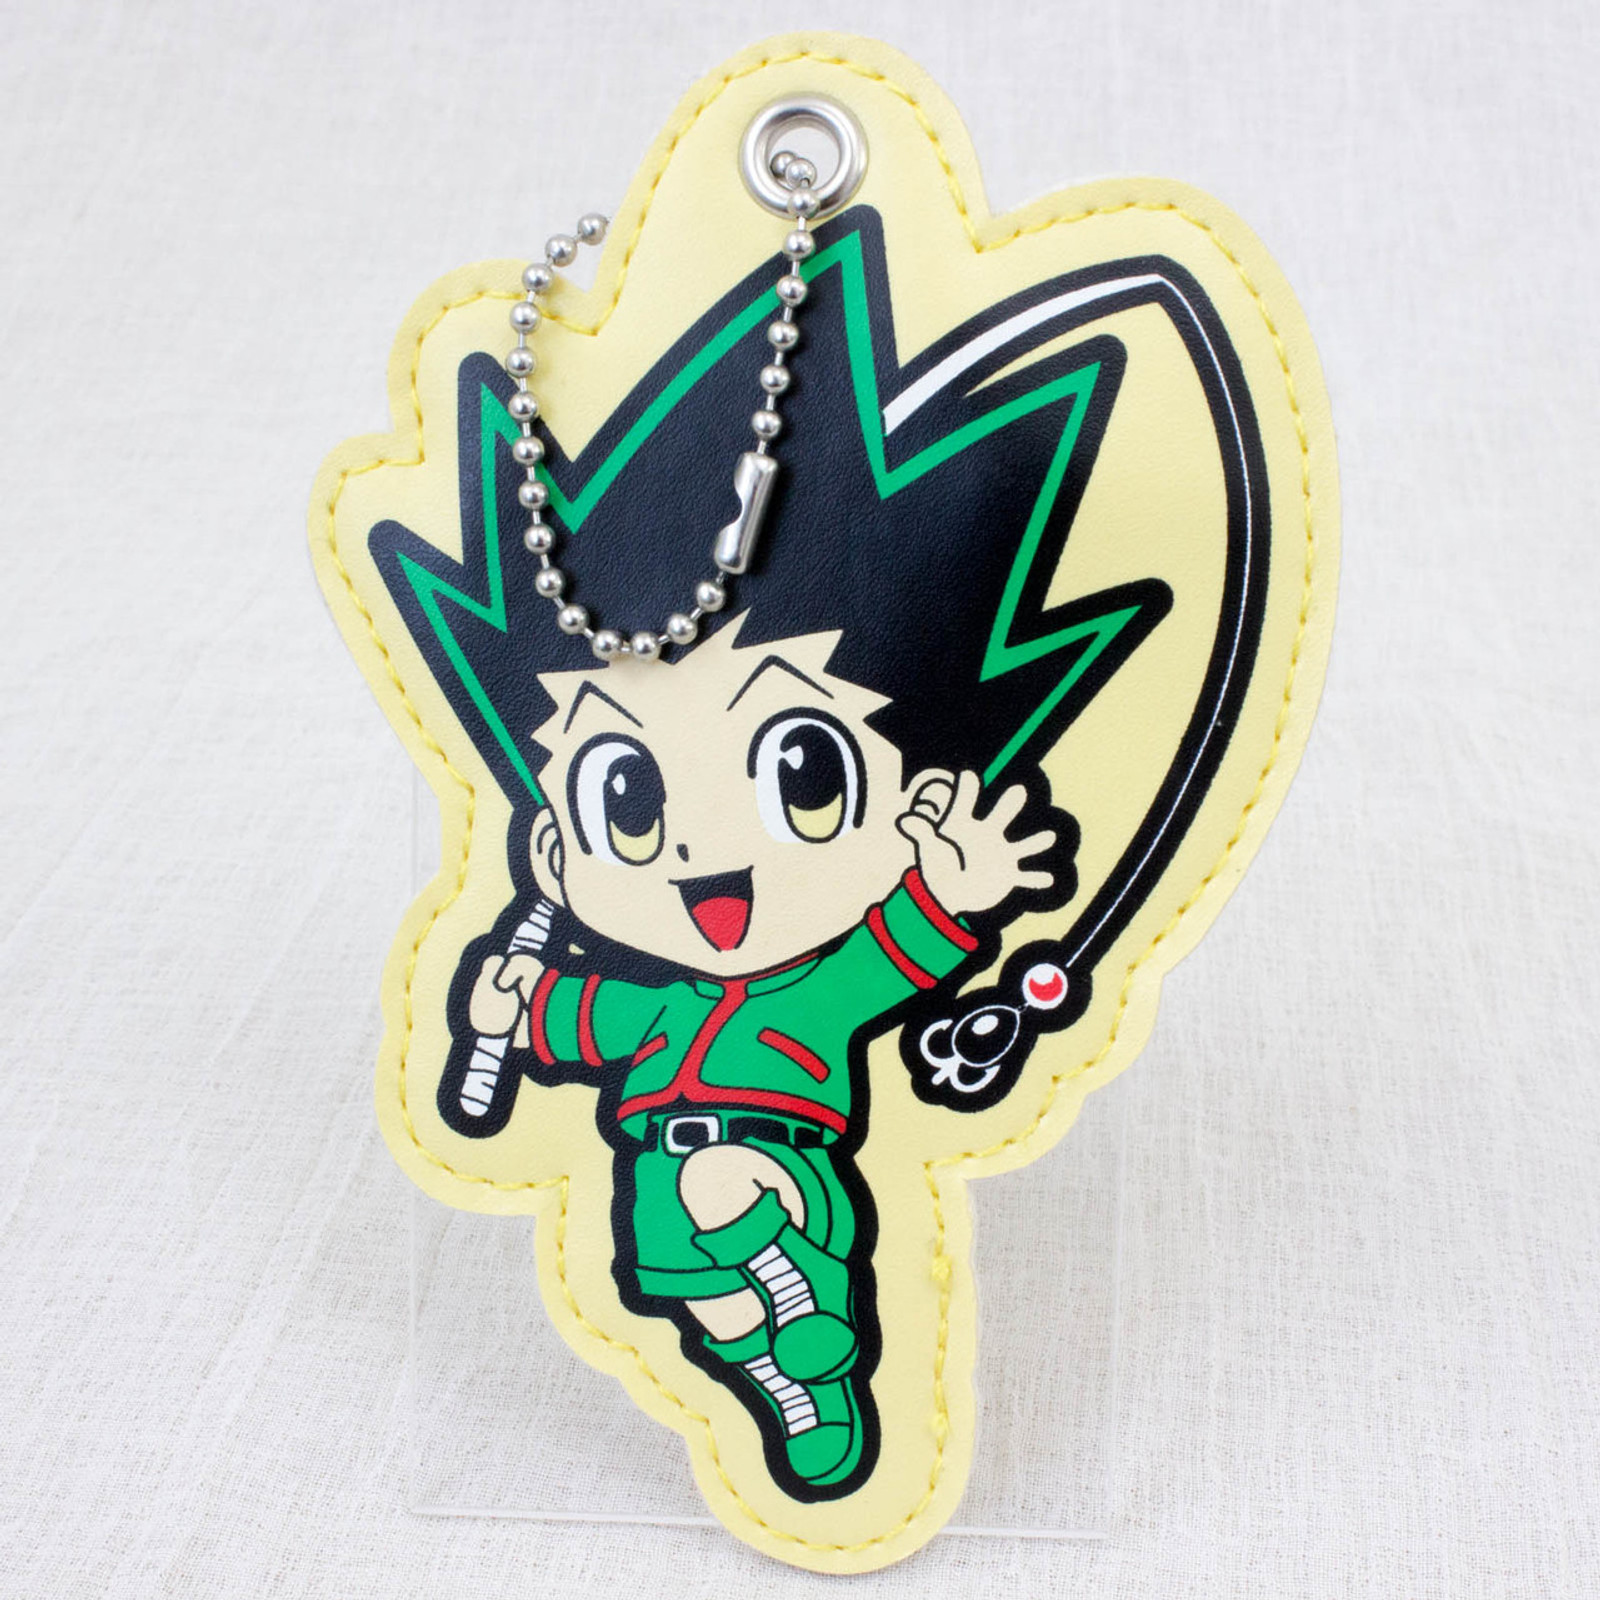 HUNTER x HUNTER Last Mission Movie Gon Freecss Mascot Coin Case JAPAN ANIME